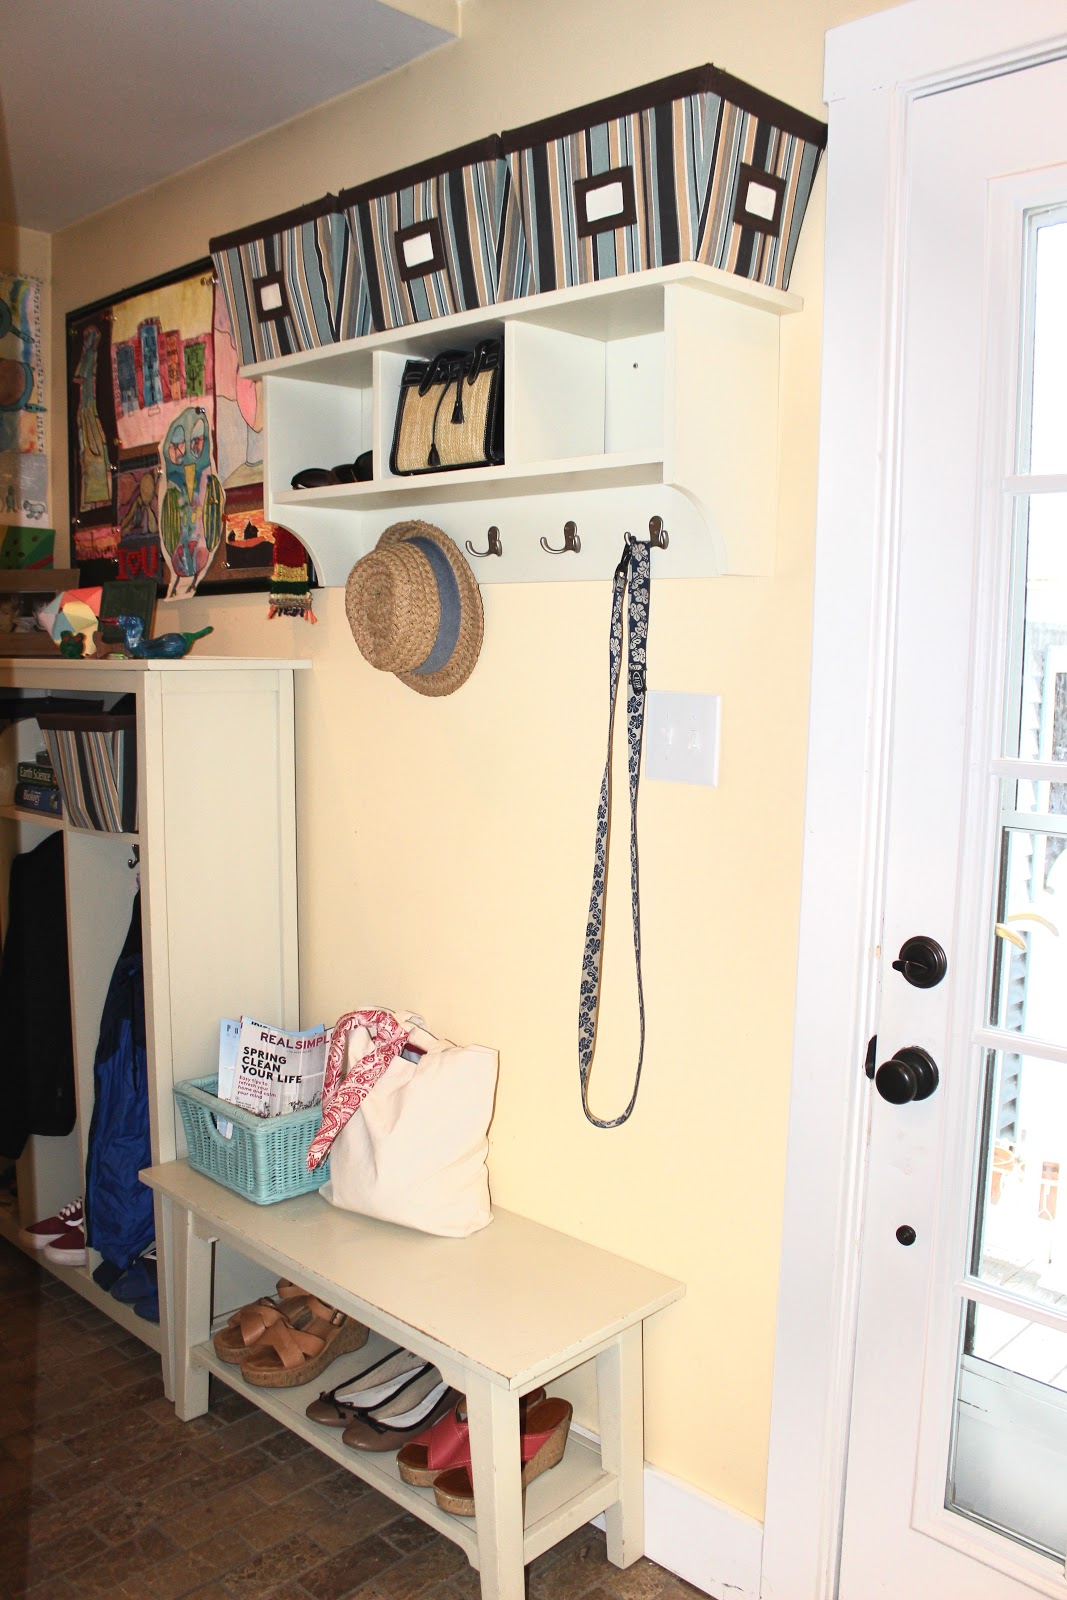 Tips on How to Organize Your Mudroom and Entryway